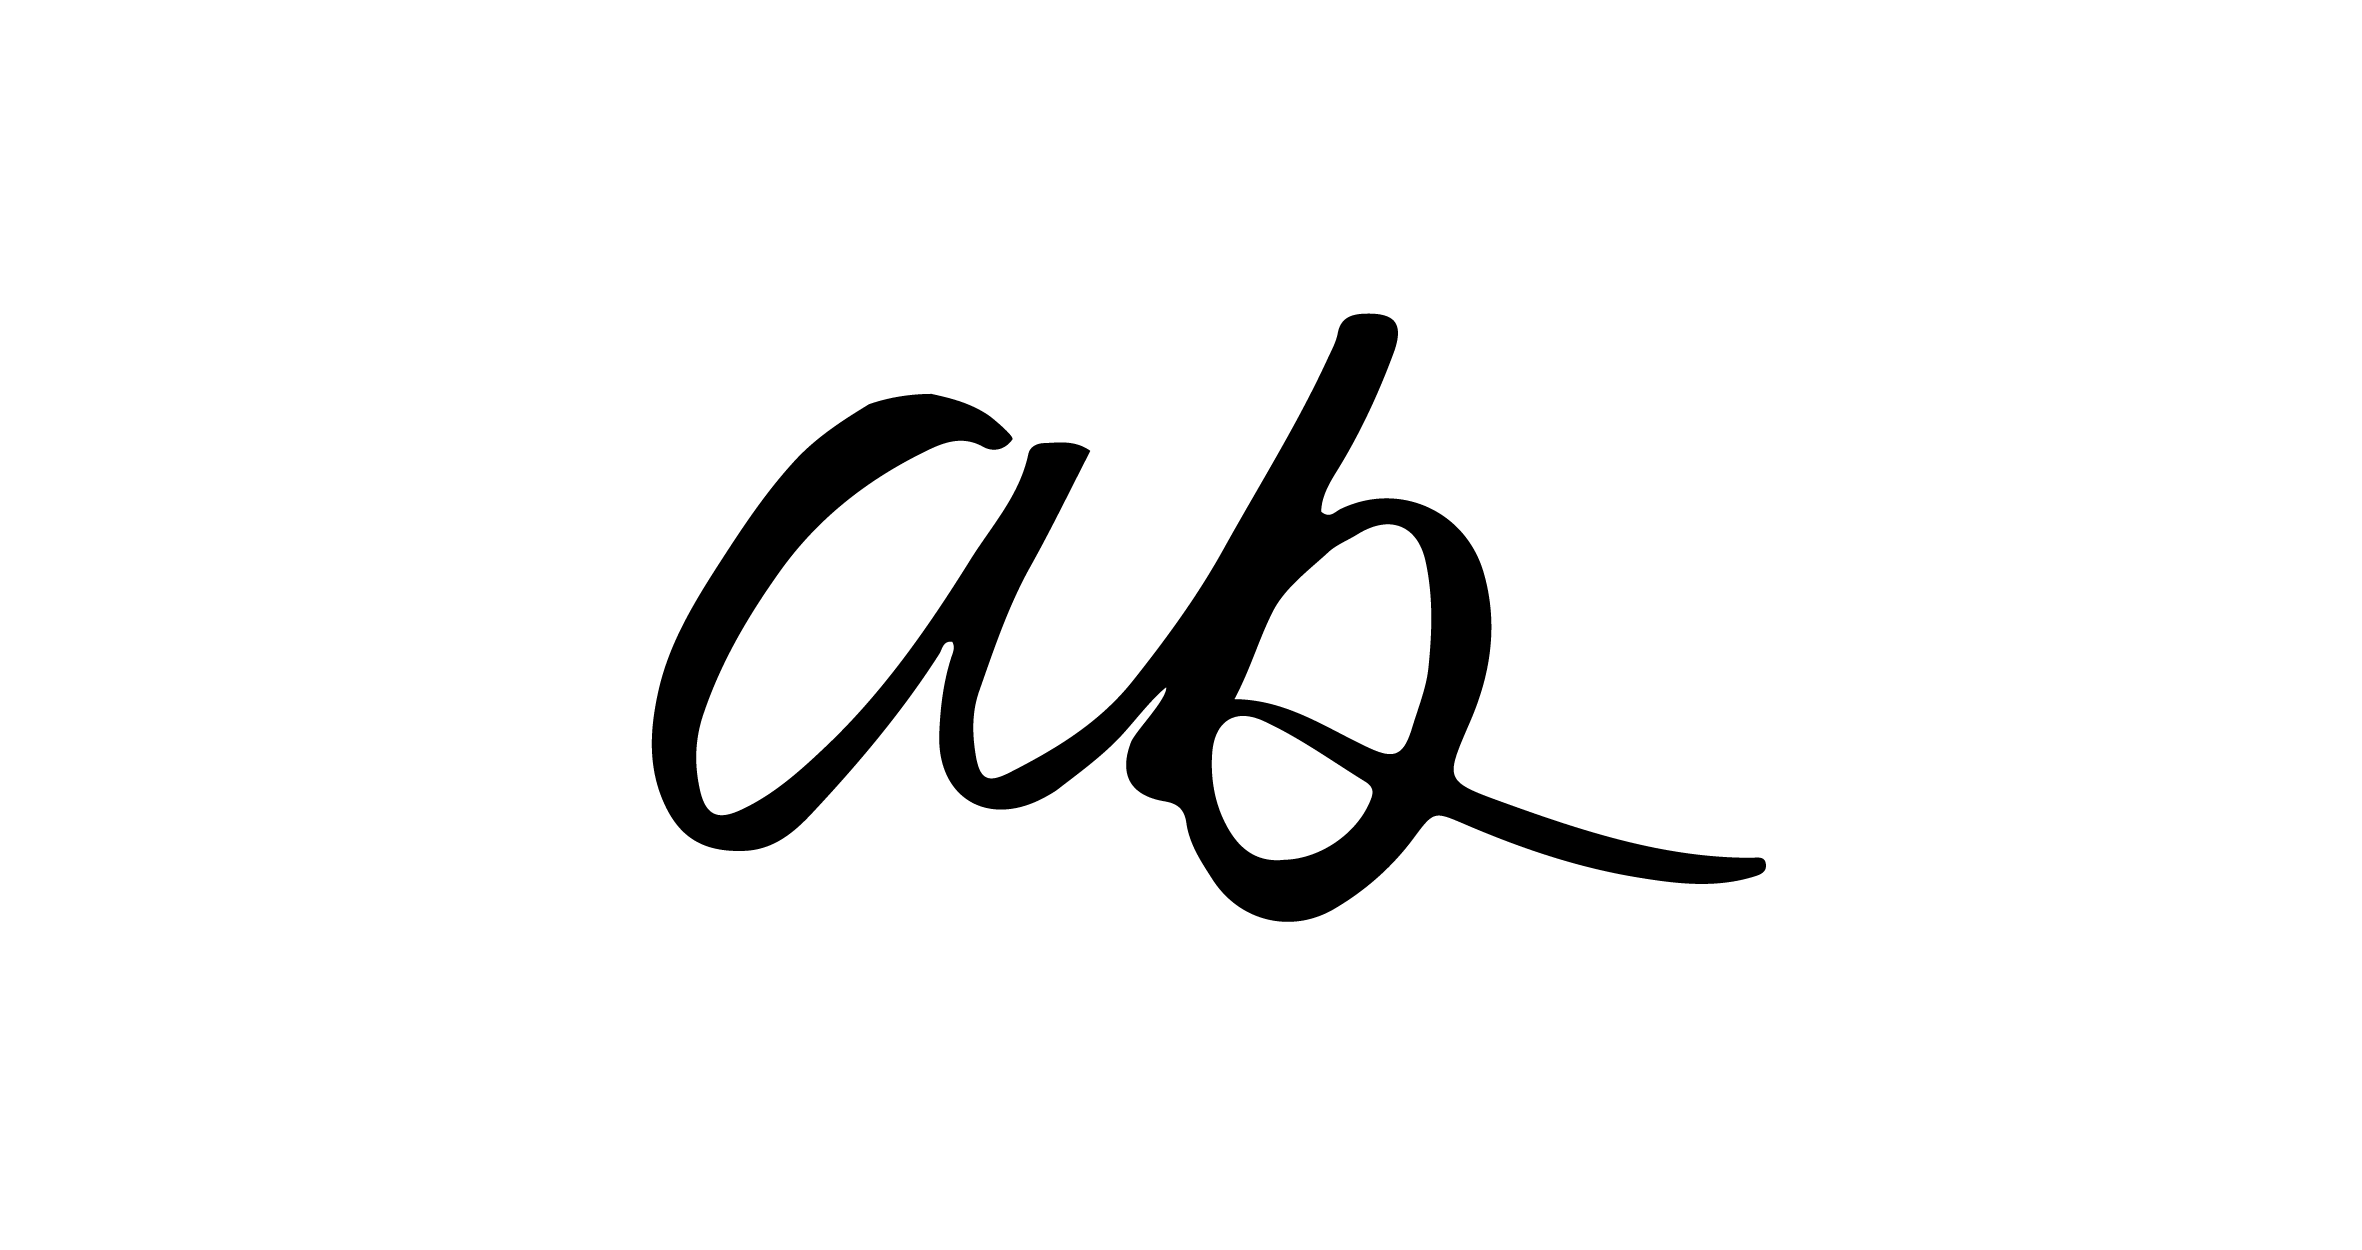 BRK_Signature_wider.png